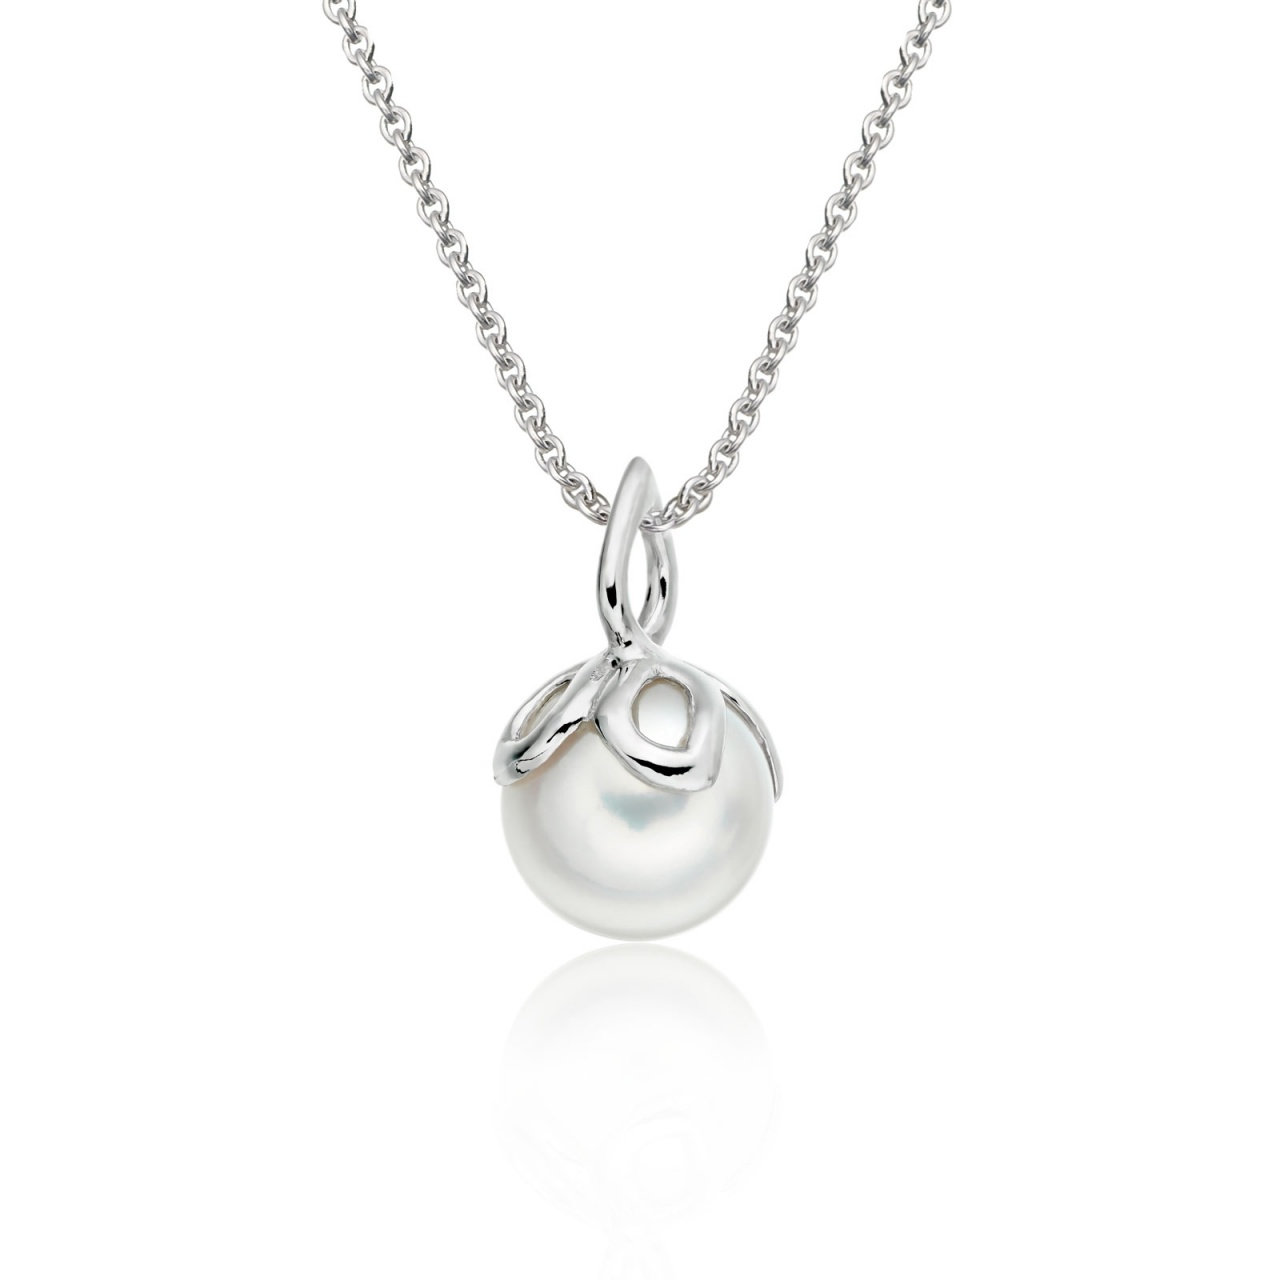 Entwined Pearl Pendant with White Gold Chain-PEVARWG1186-1